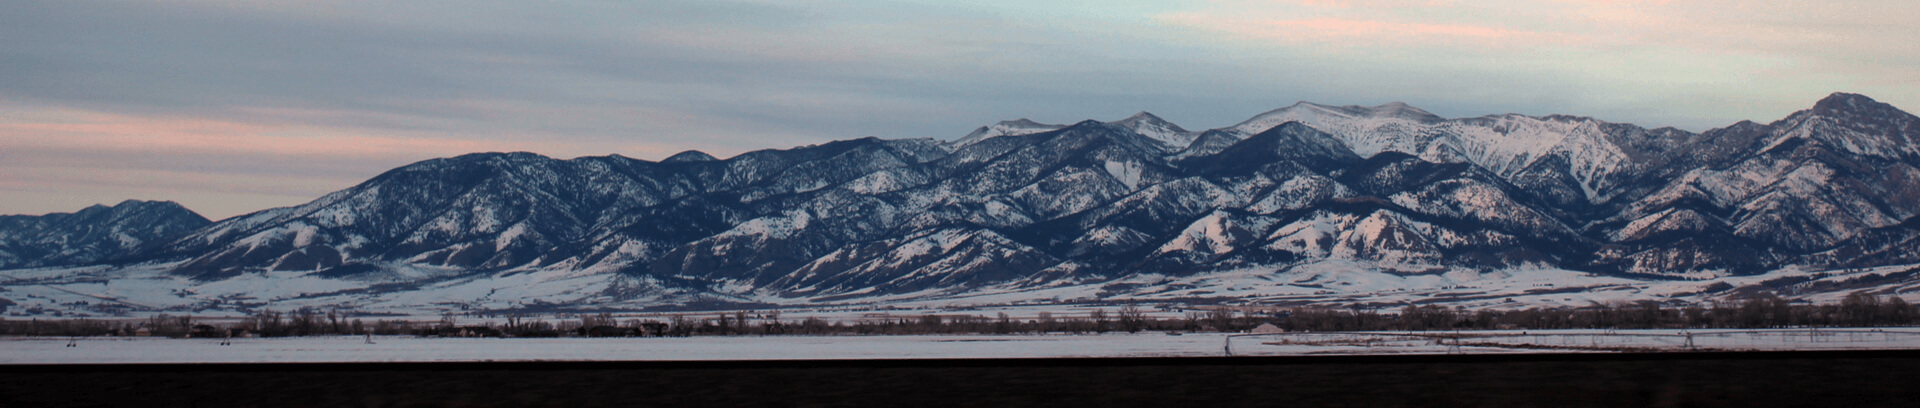 a scenic photo of the Bridger Mountains in Bozeman, Montana